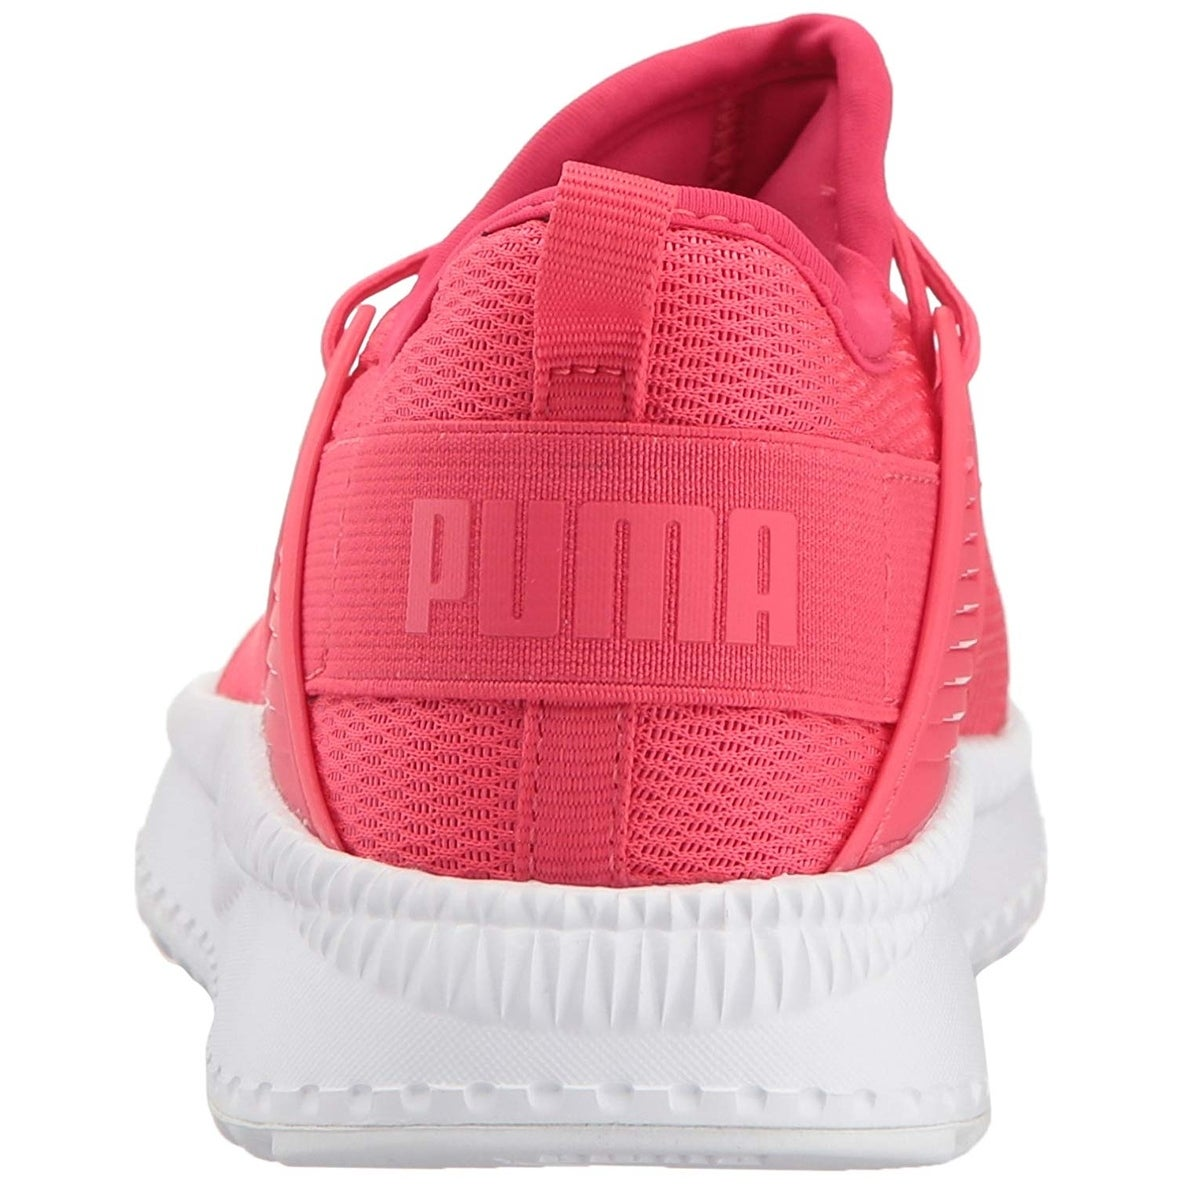 Shop Kids PUMA Girls pacer next cage Low Top Lace Up Walking Shoes - 1.5 m  us little kid - Free Shipping On Orders Over  45 - Overstock - 22633877 4f7600dff